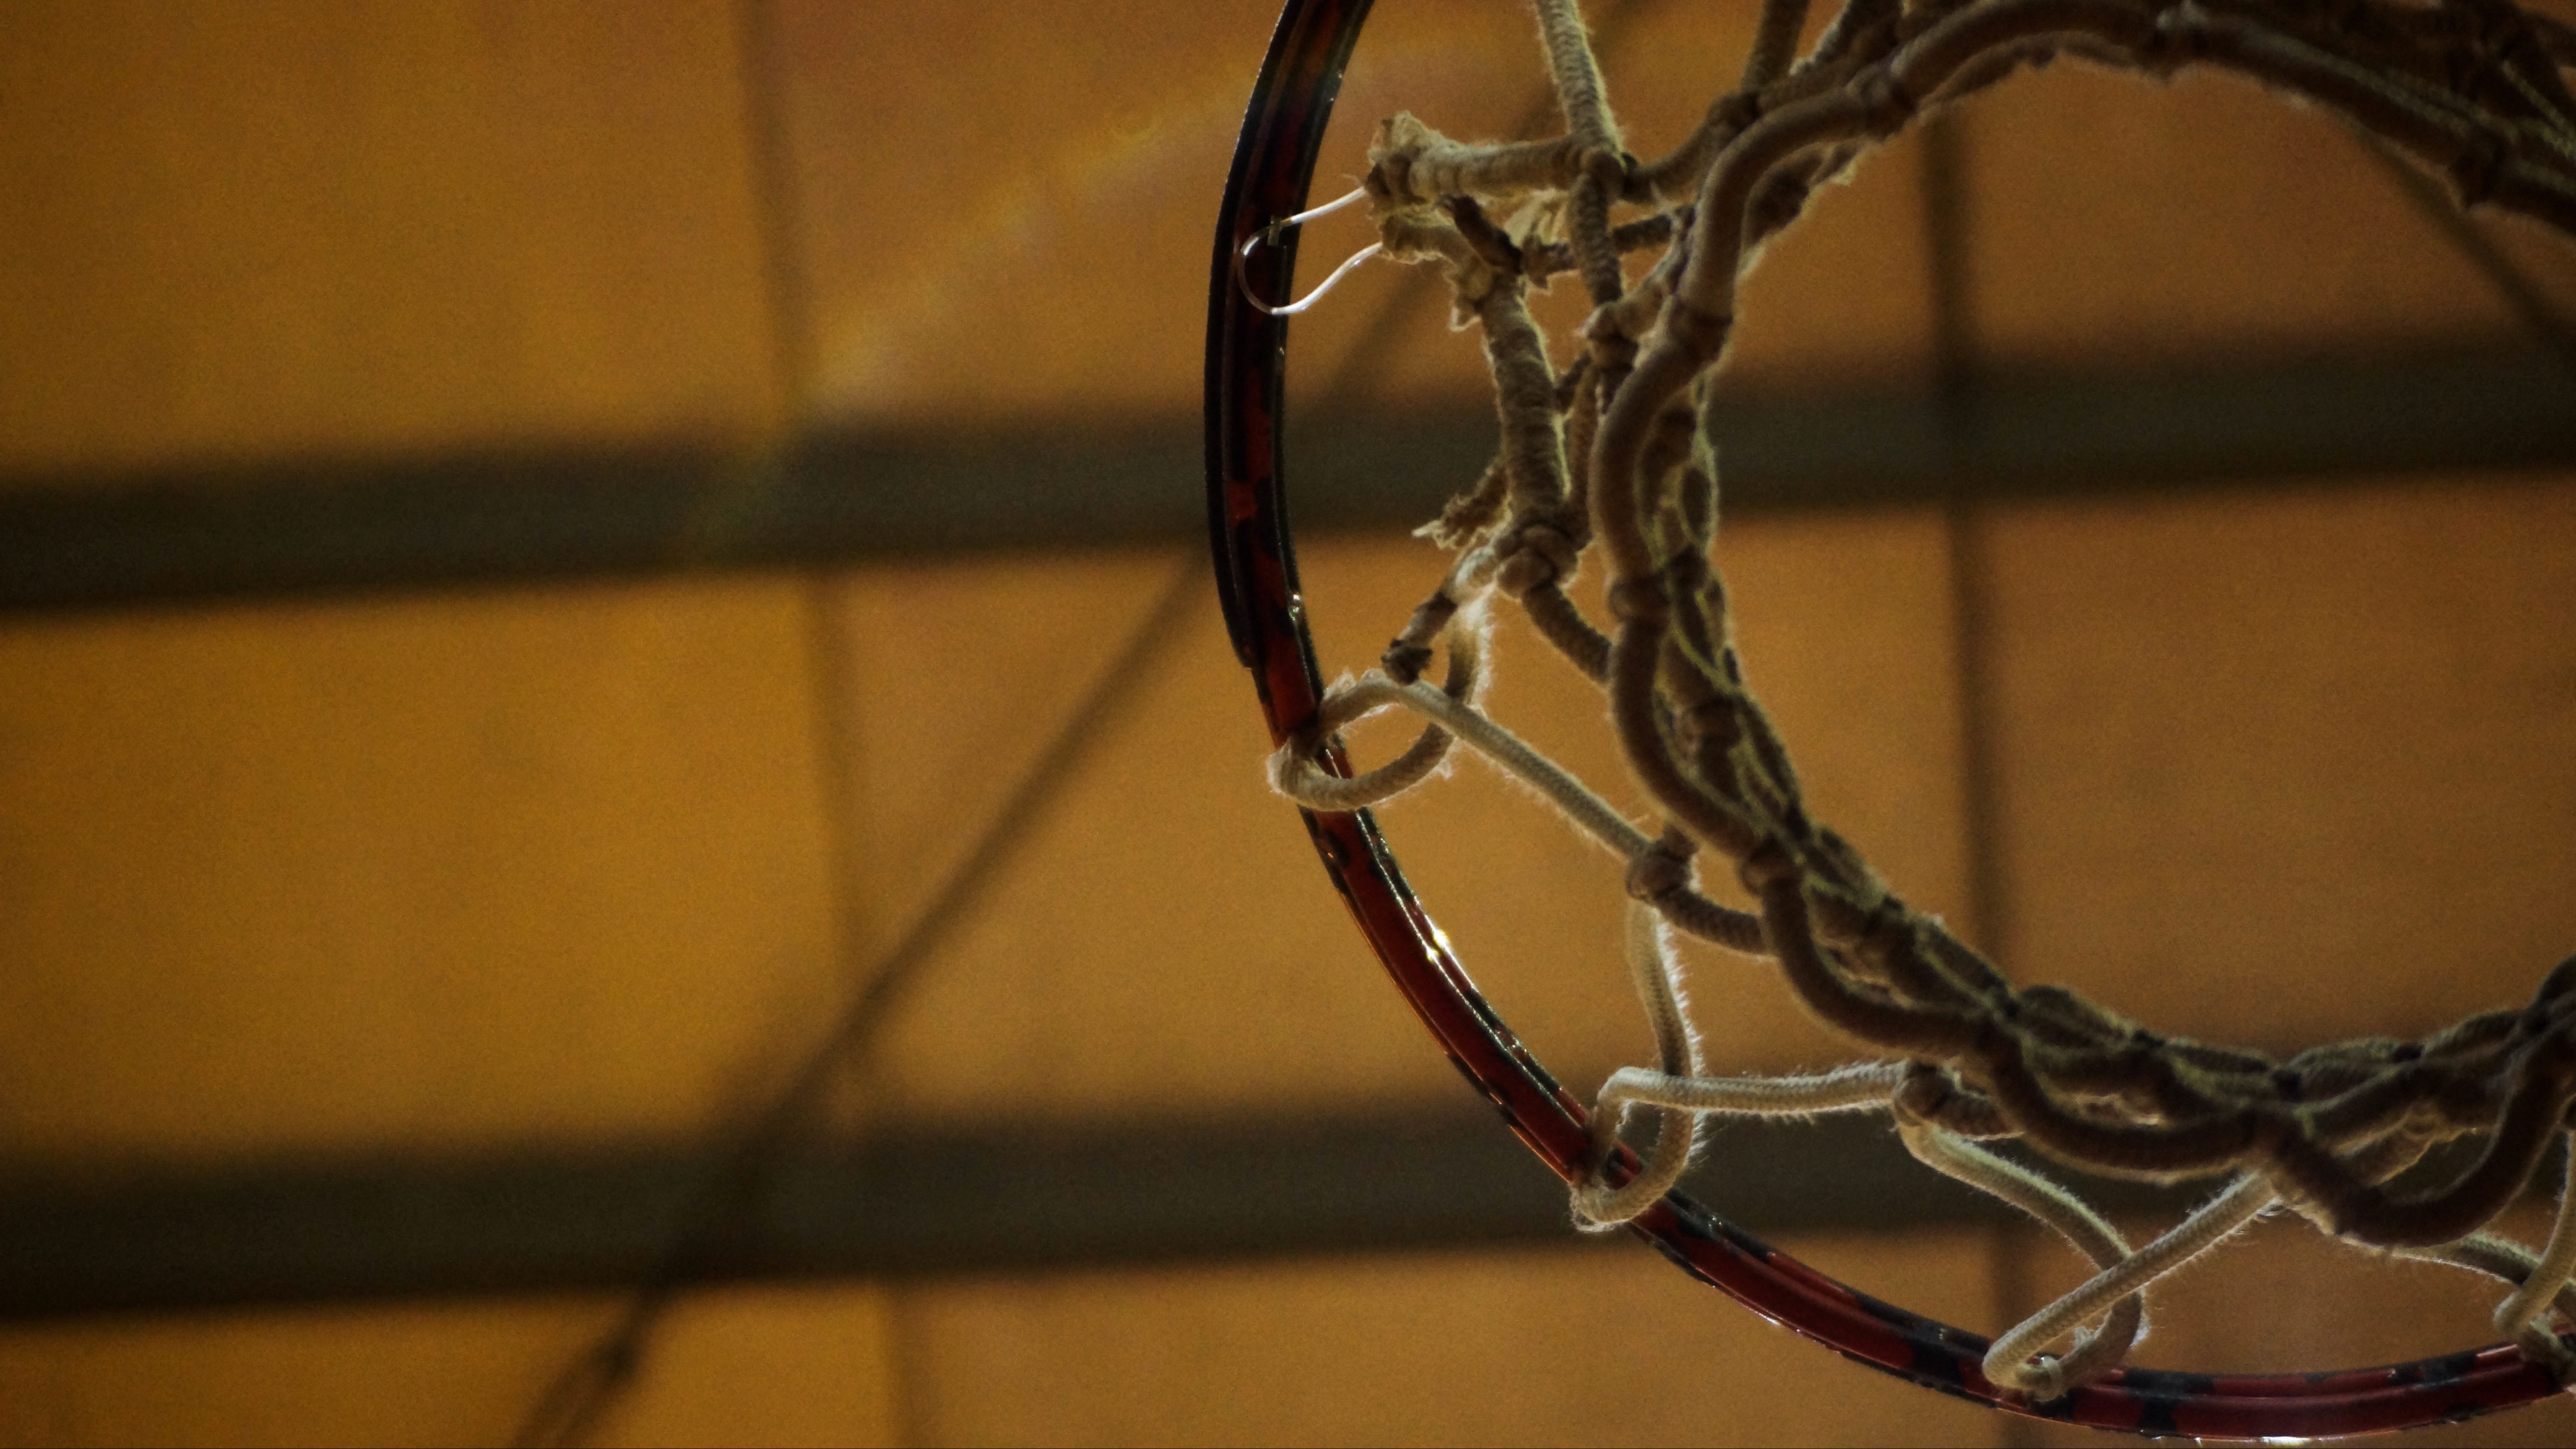 basketball ring net circle 4k 1540061541 - basketball ring, net, circle 4k - net, circle, basketball ring